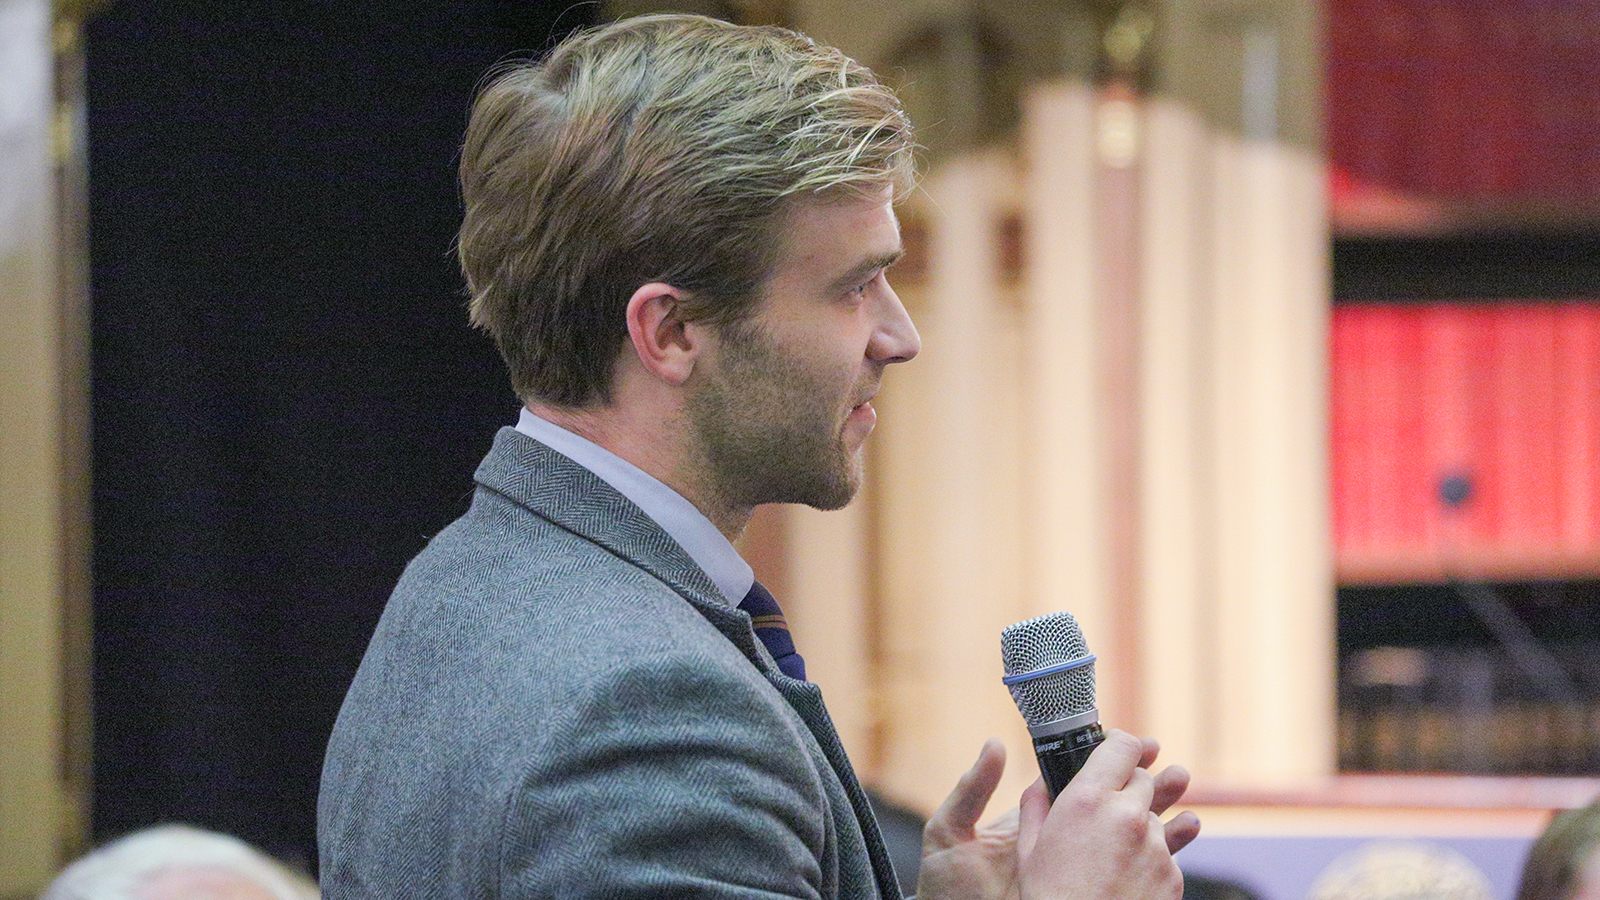 Berkley Center visiting research fellow, Tobias Cremer, asks a question during audience Q&A.